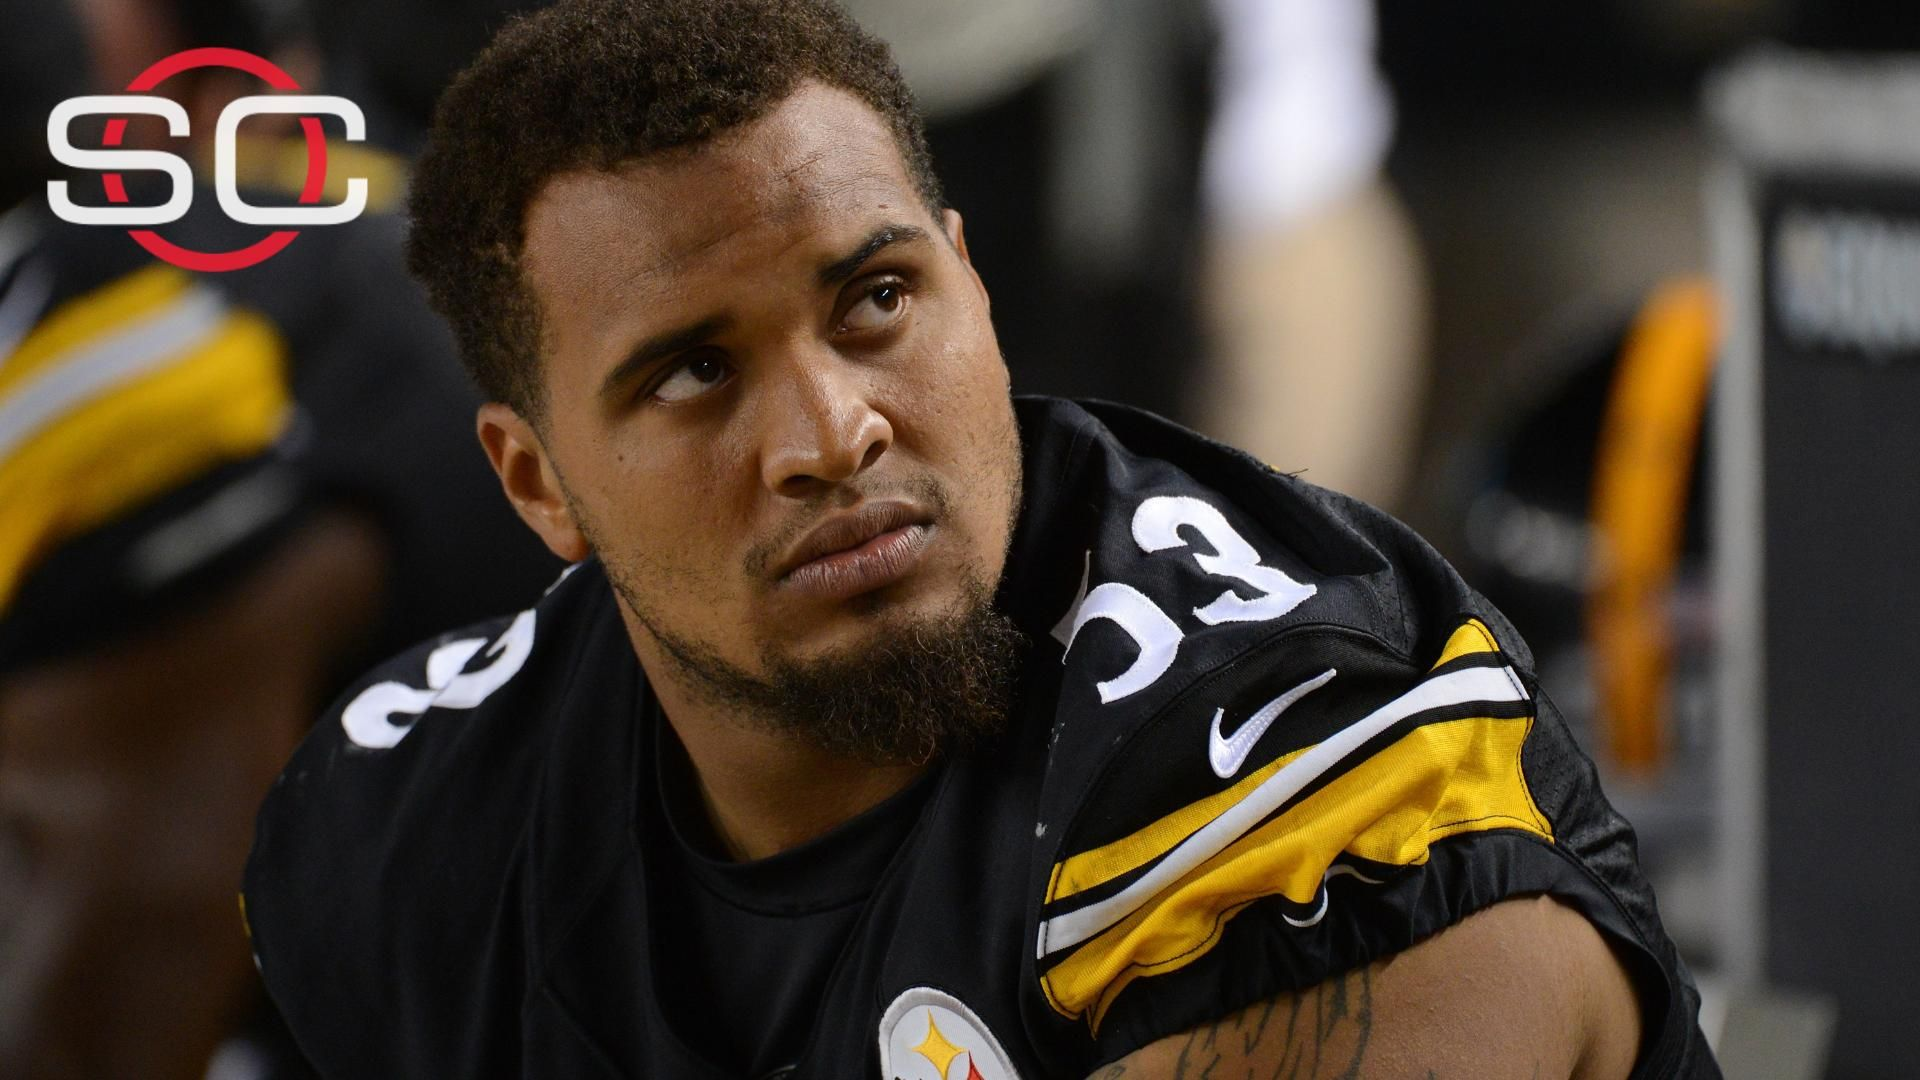 https://secure.espncdn.com/combiner/i?img=/media/motion/2015/1015/dm_151015_nfl_pouncey_injury/dm_151015_nfl_pouncey_injury.jpg